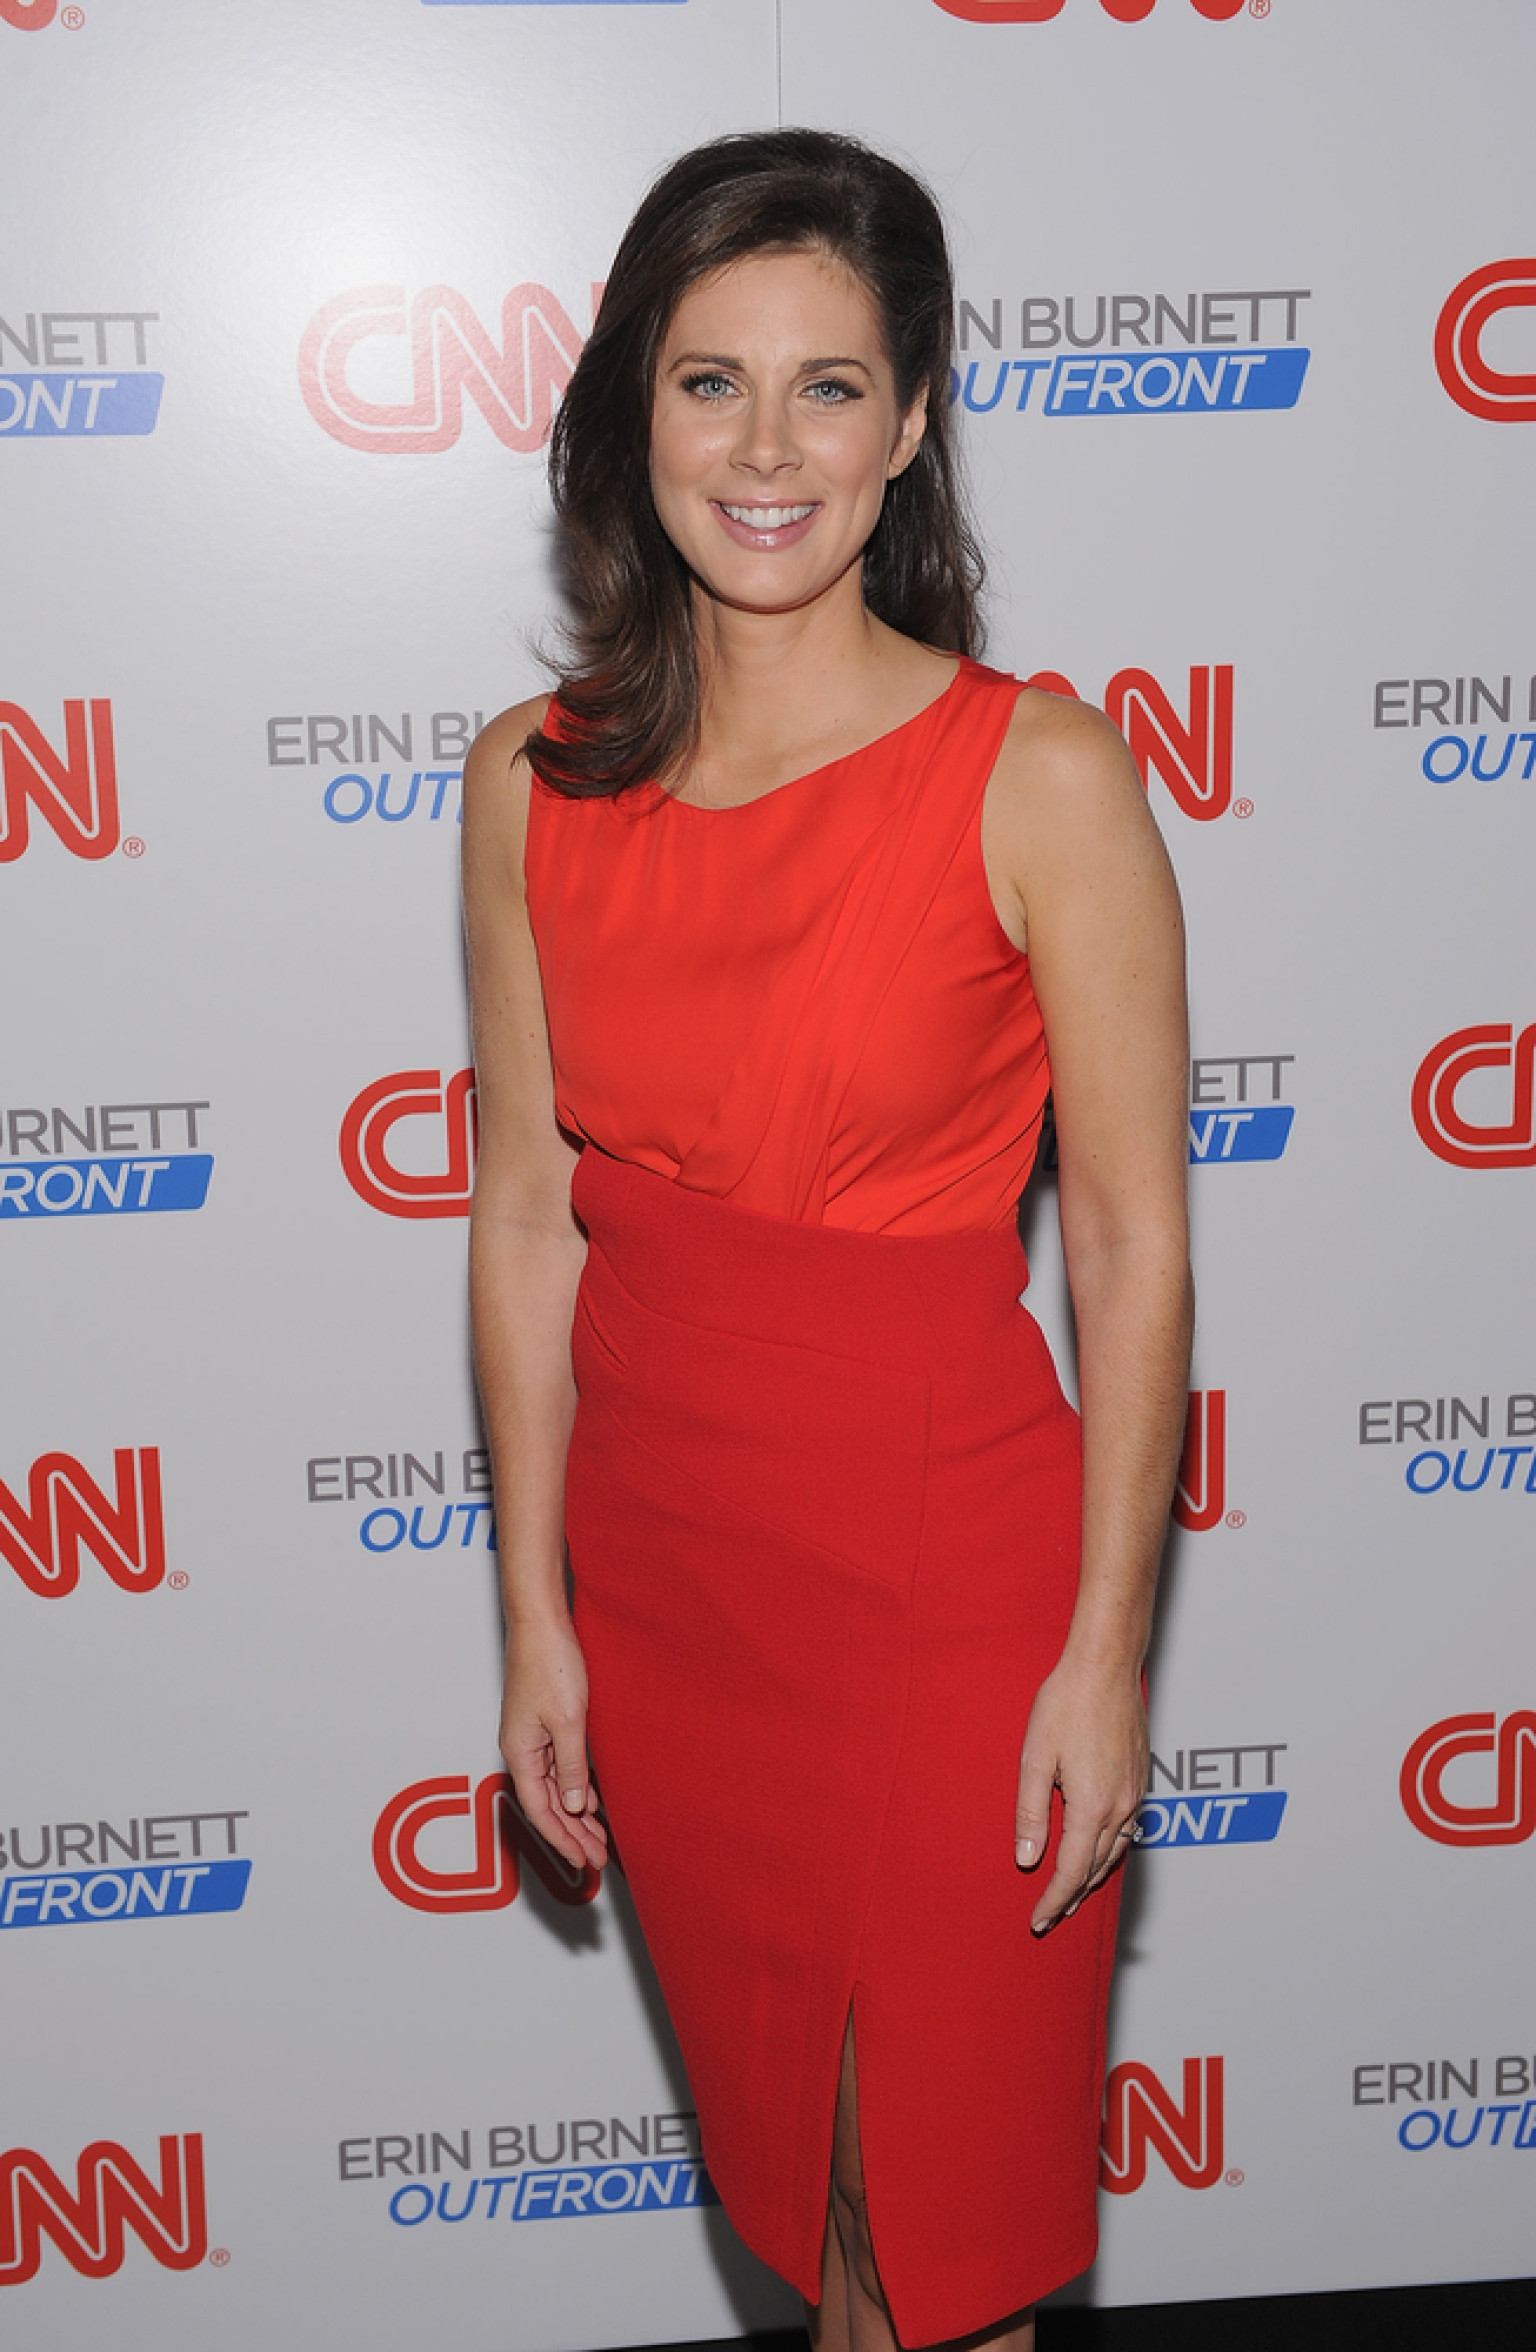 Erin Burnett Hot Bikini Pics, News Host Kissing Scene